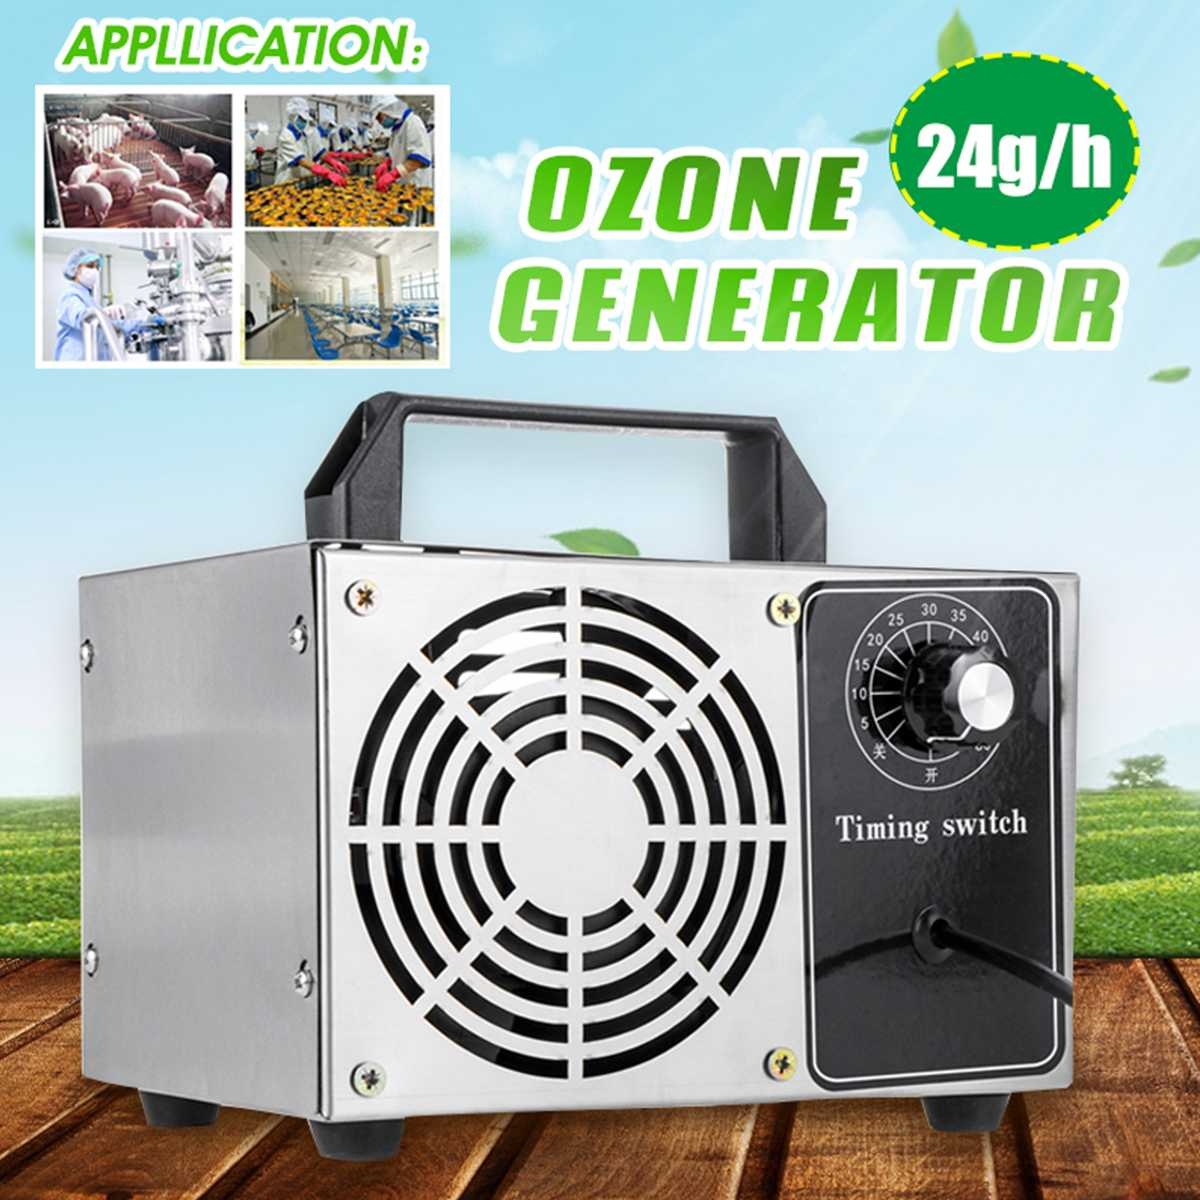 24g/h Ionizer Ozone Generator 220V/110V Air Purifiers Disinfection Machine Cleaner Sterilizer Odor Formaldehyde Removal Home use